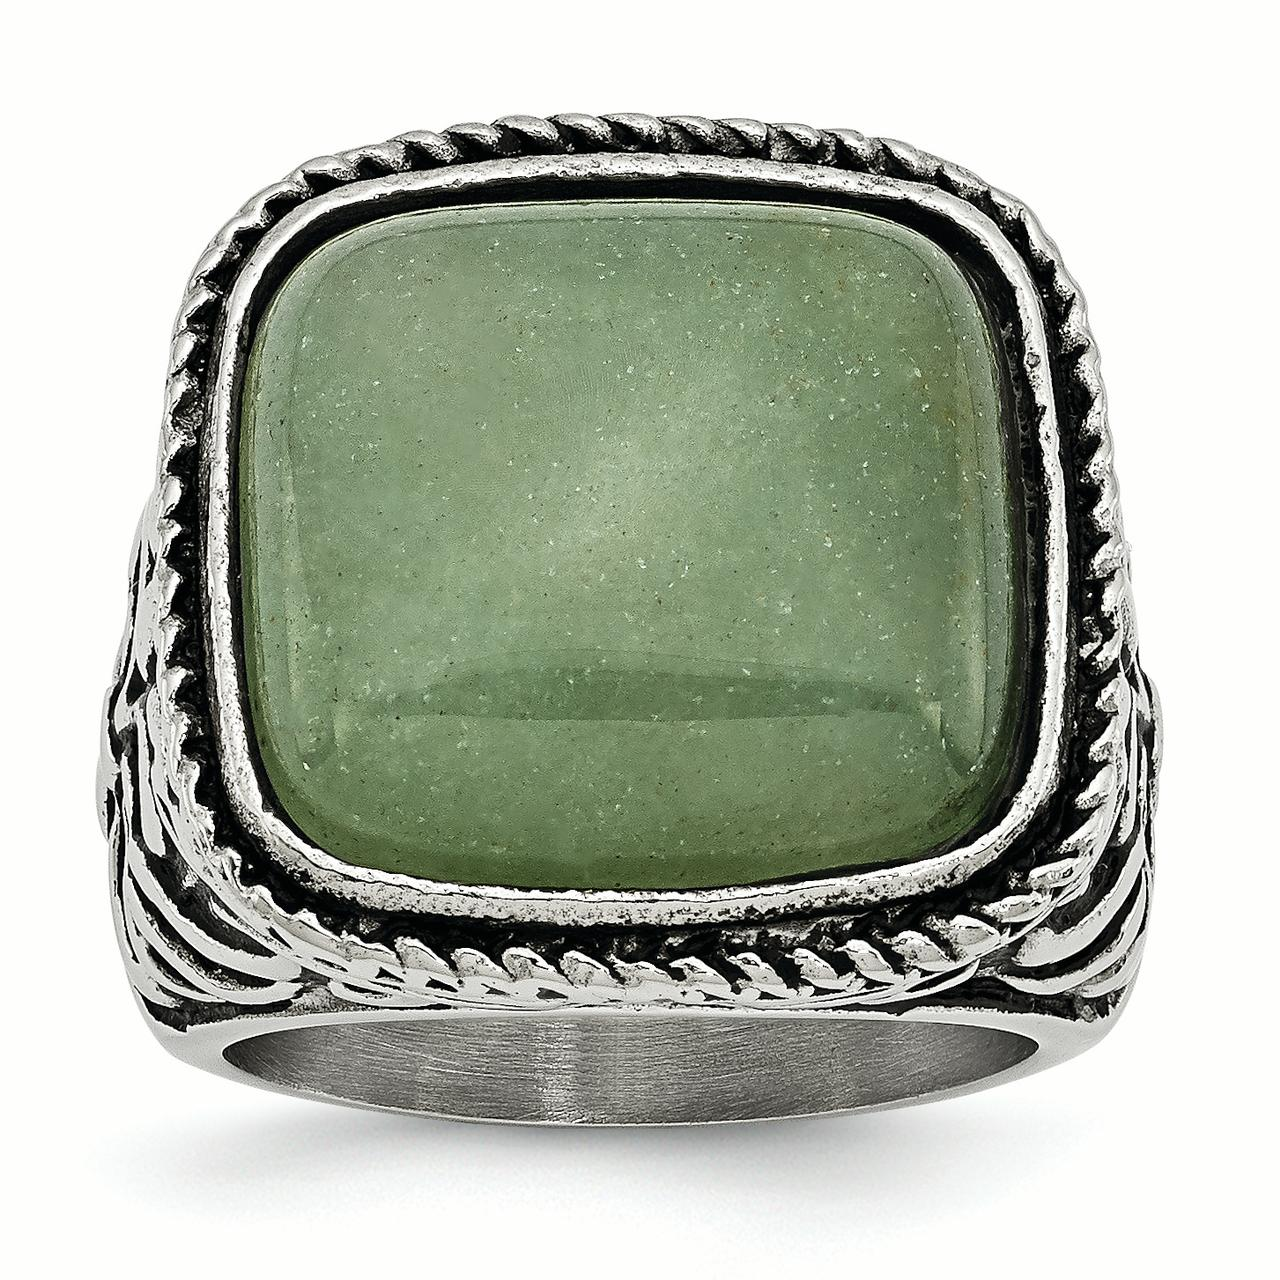 Stainless Steel Antiqued Polished Chalcedony Aventurine Ring by Kevin Jewelers